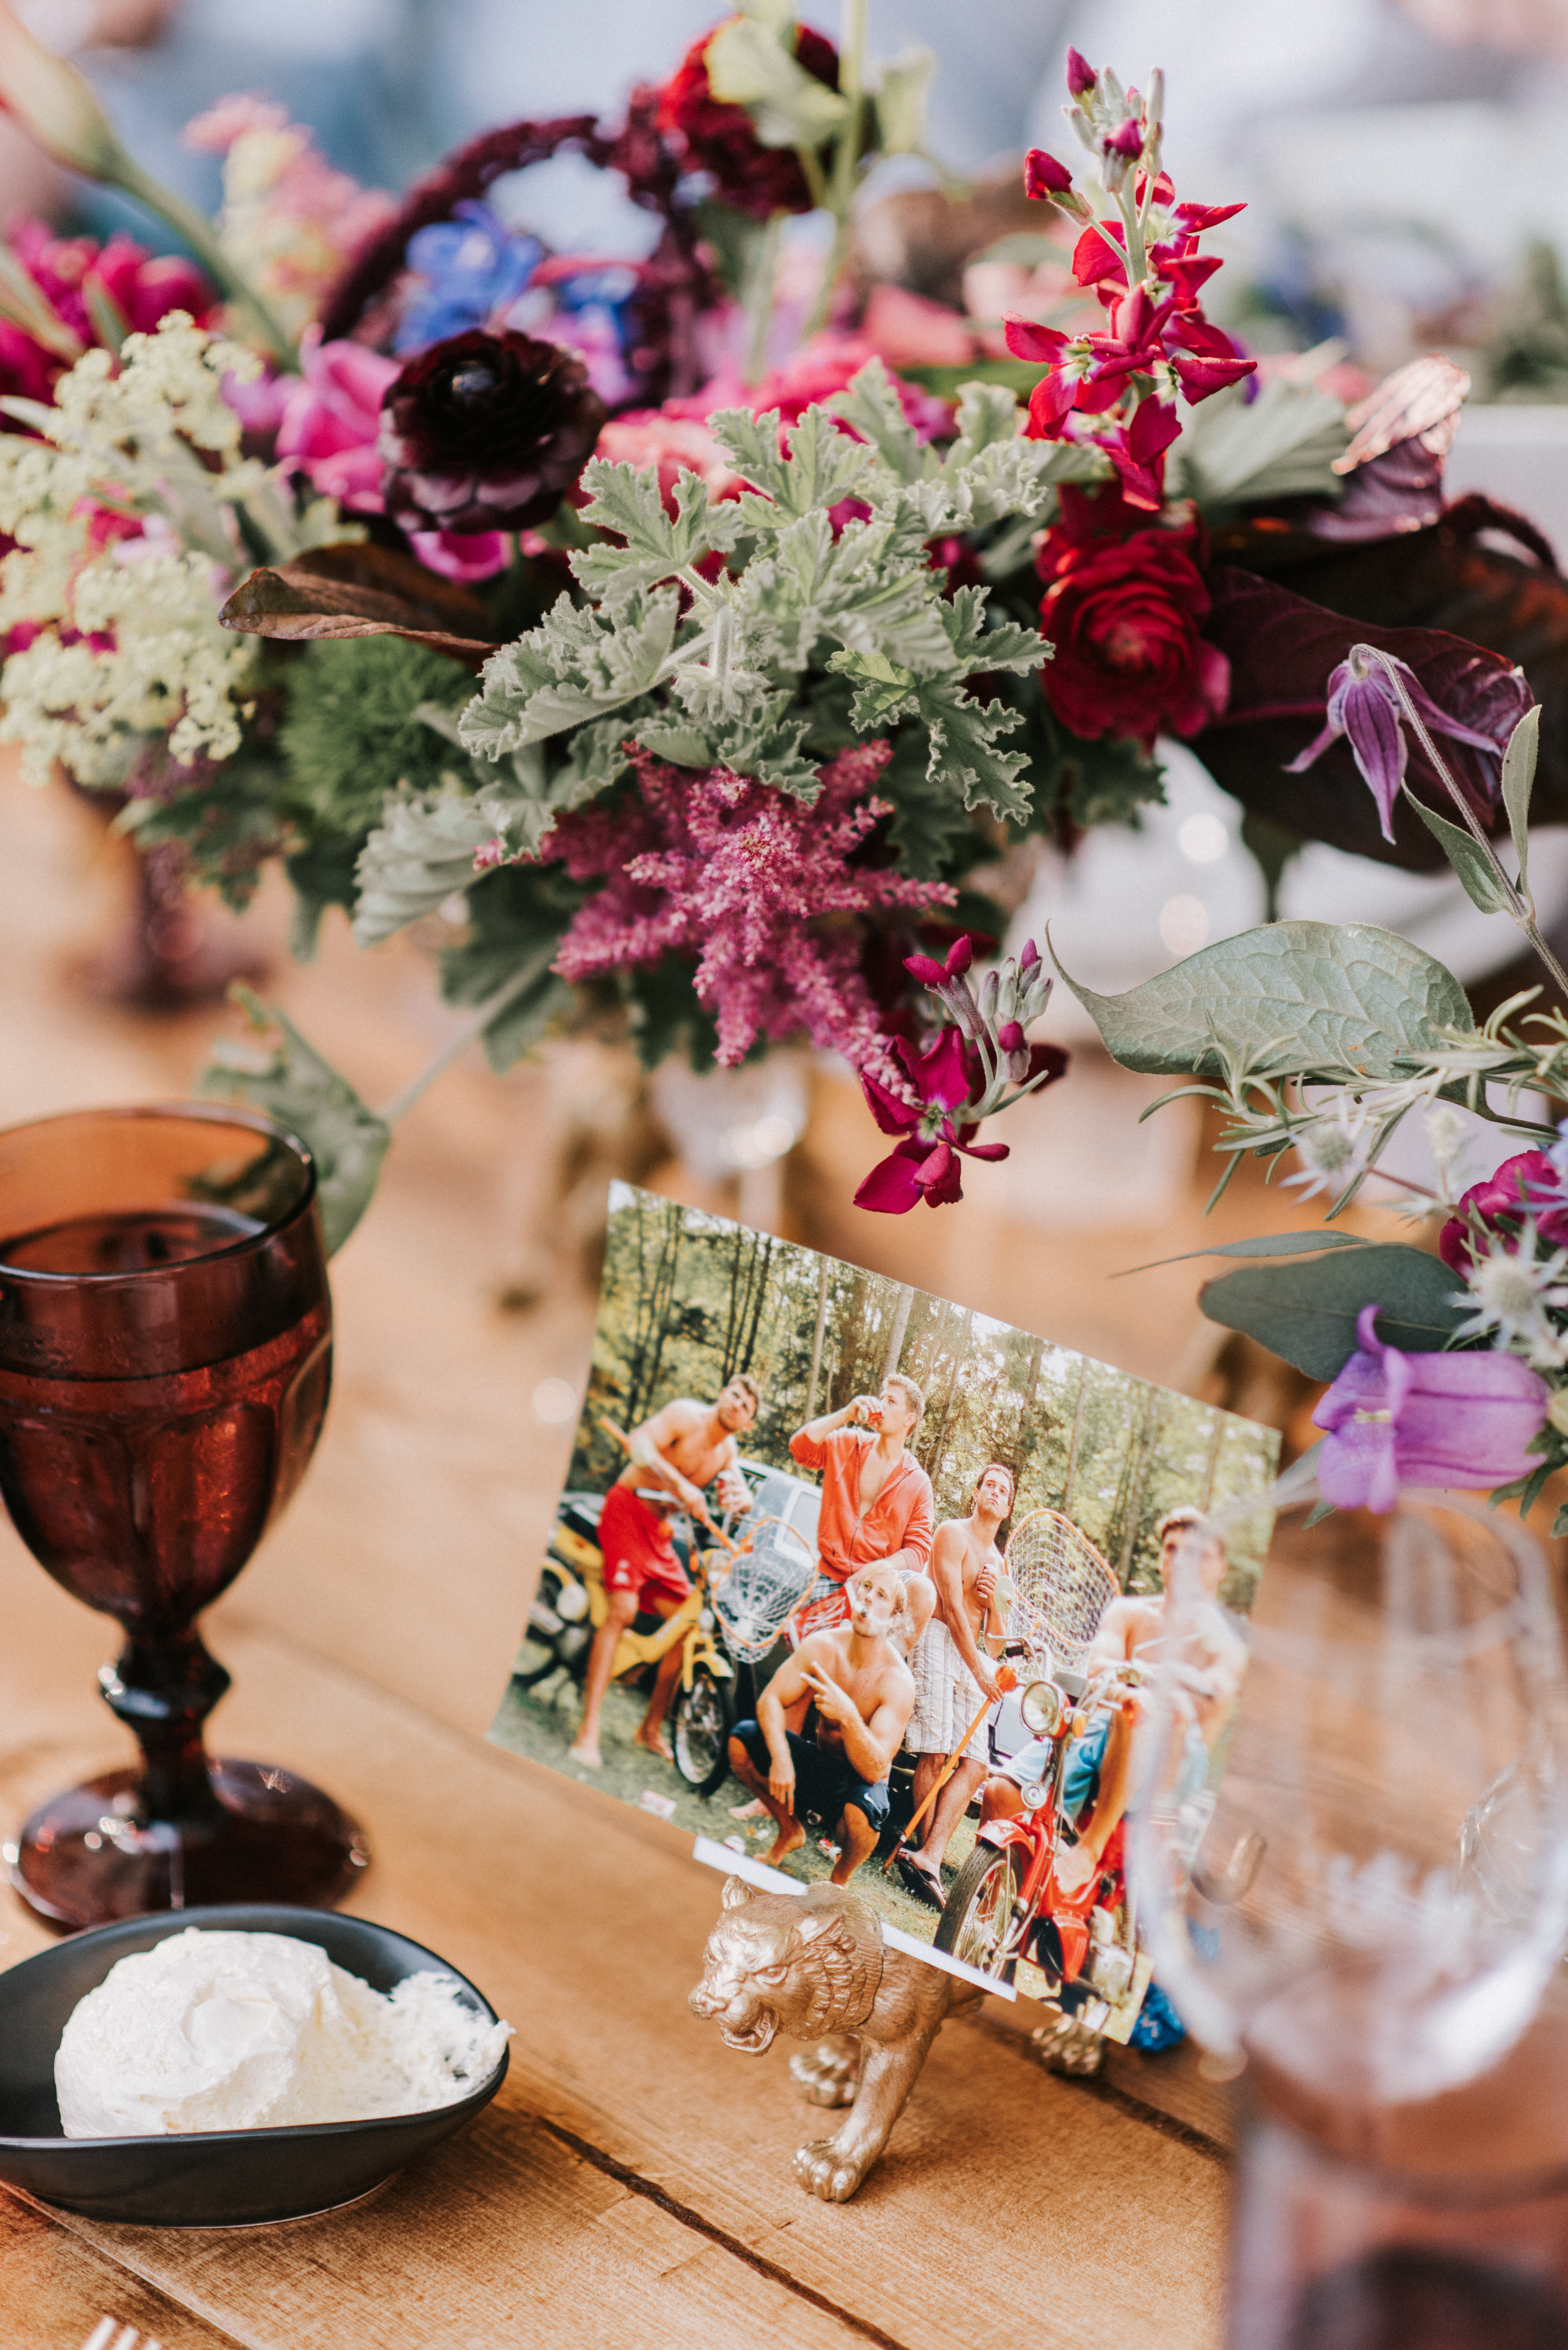 Tablescape details at Hidden Pond Wedding in Kennebunkport, Maine